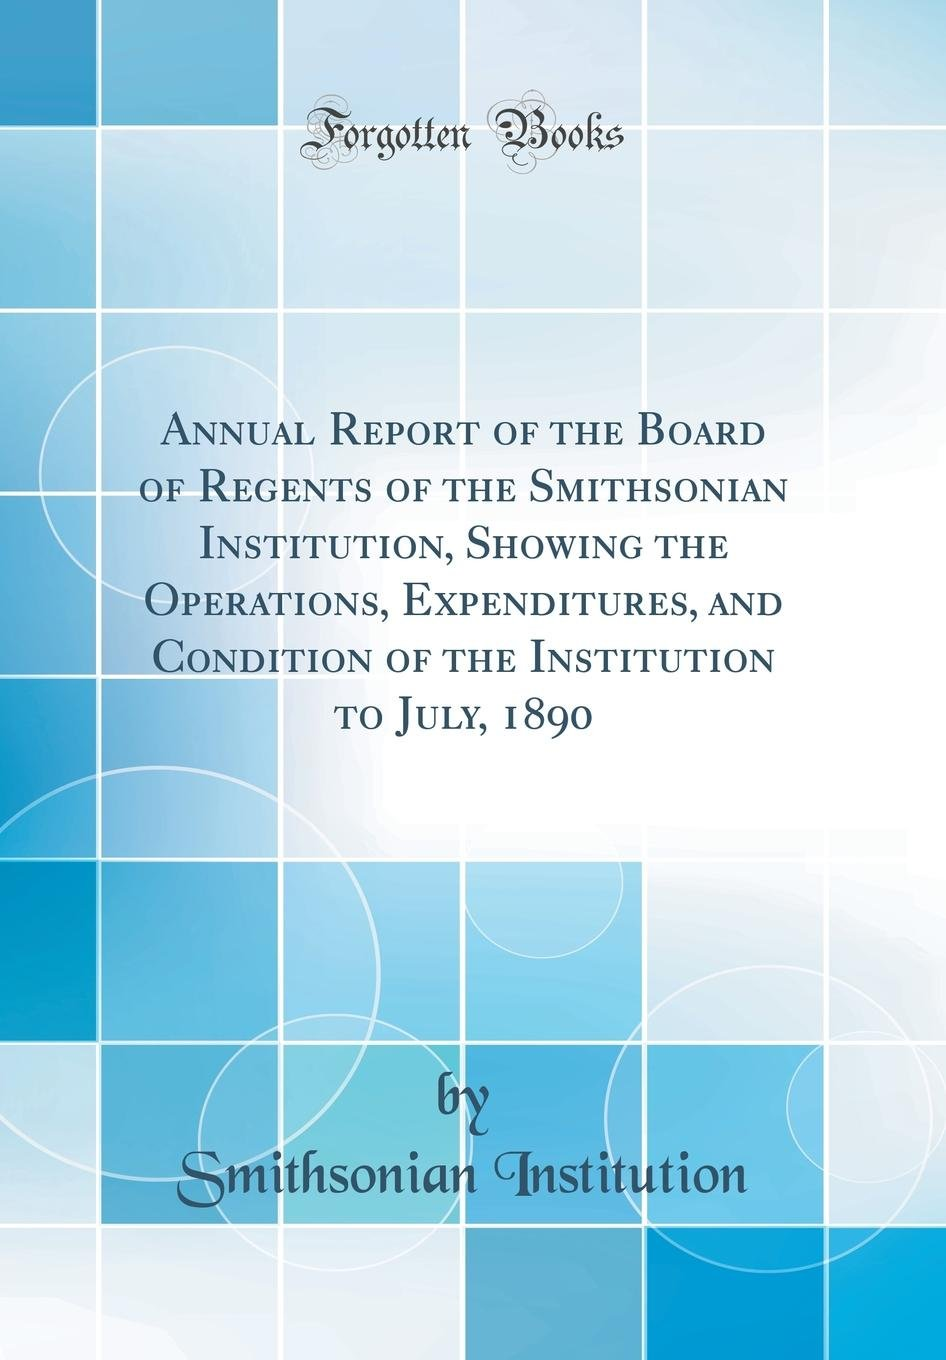 Download Annual Report of the Board of Regents of the Smithsonian Institution, Showing the Operations, Expenditures, and Condition of the Institution to July, 1890 (Classic Reprint) pdf